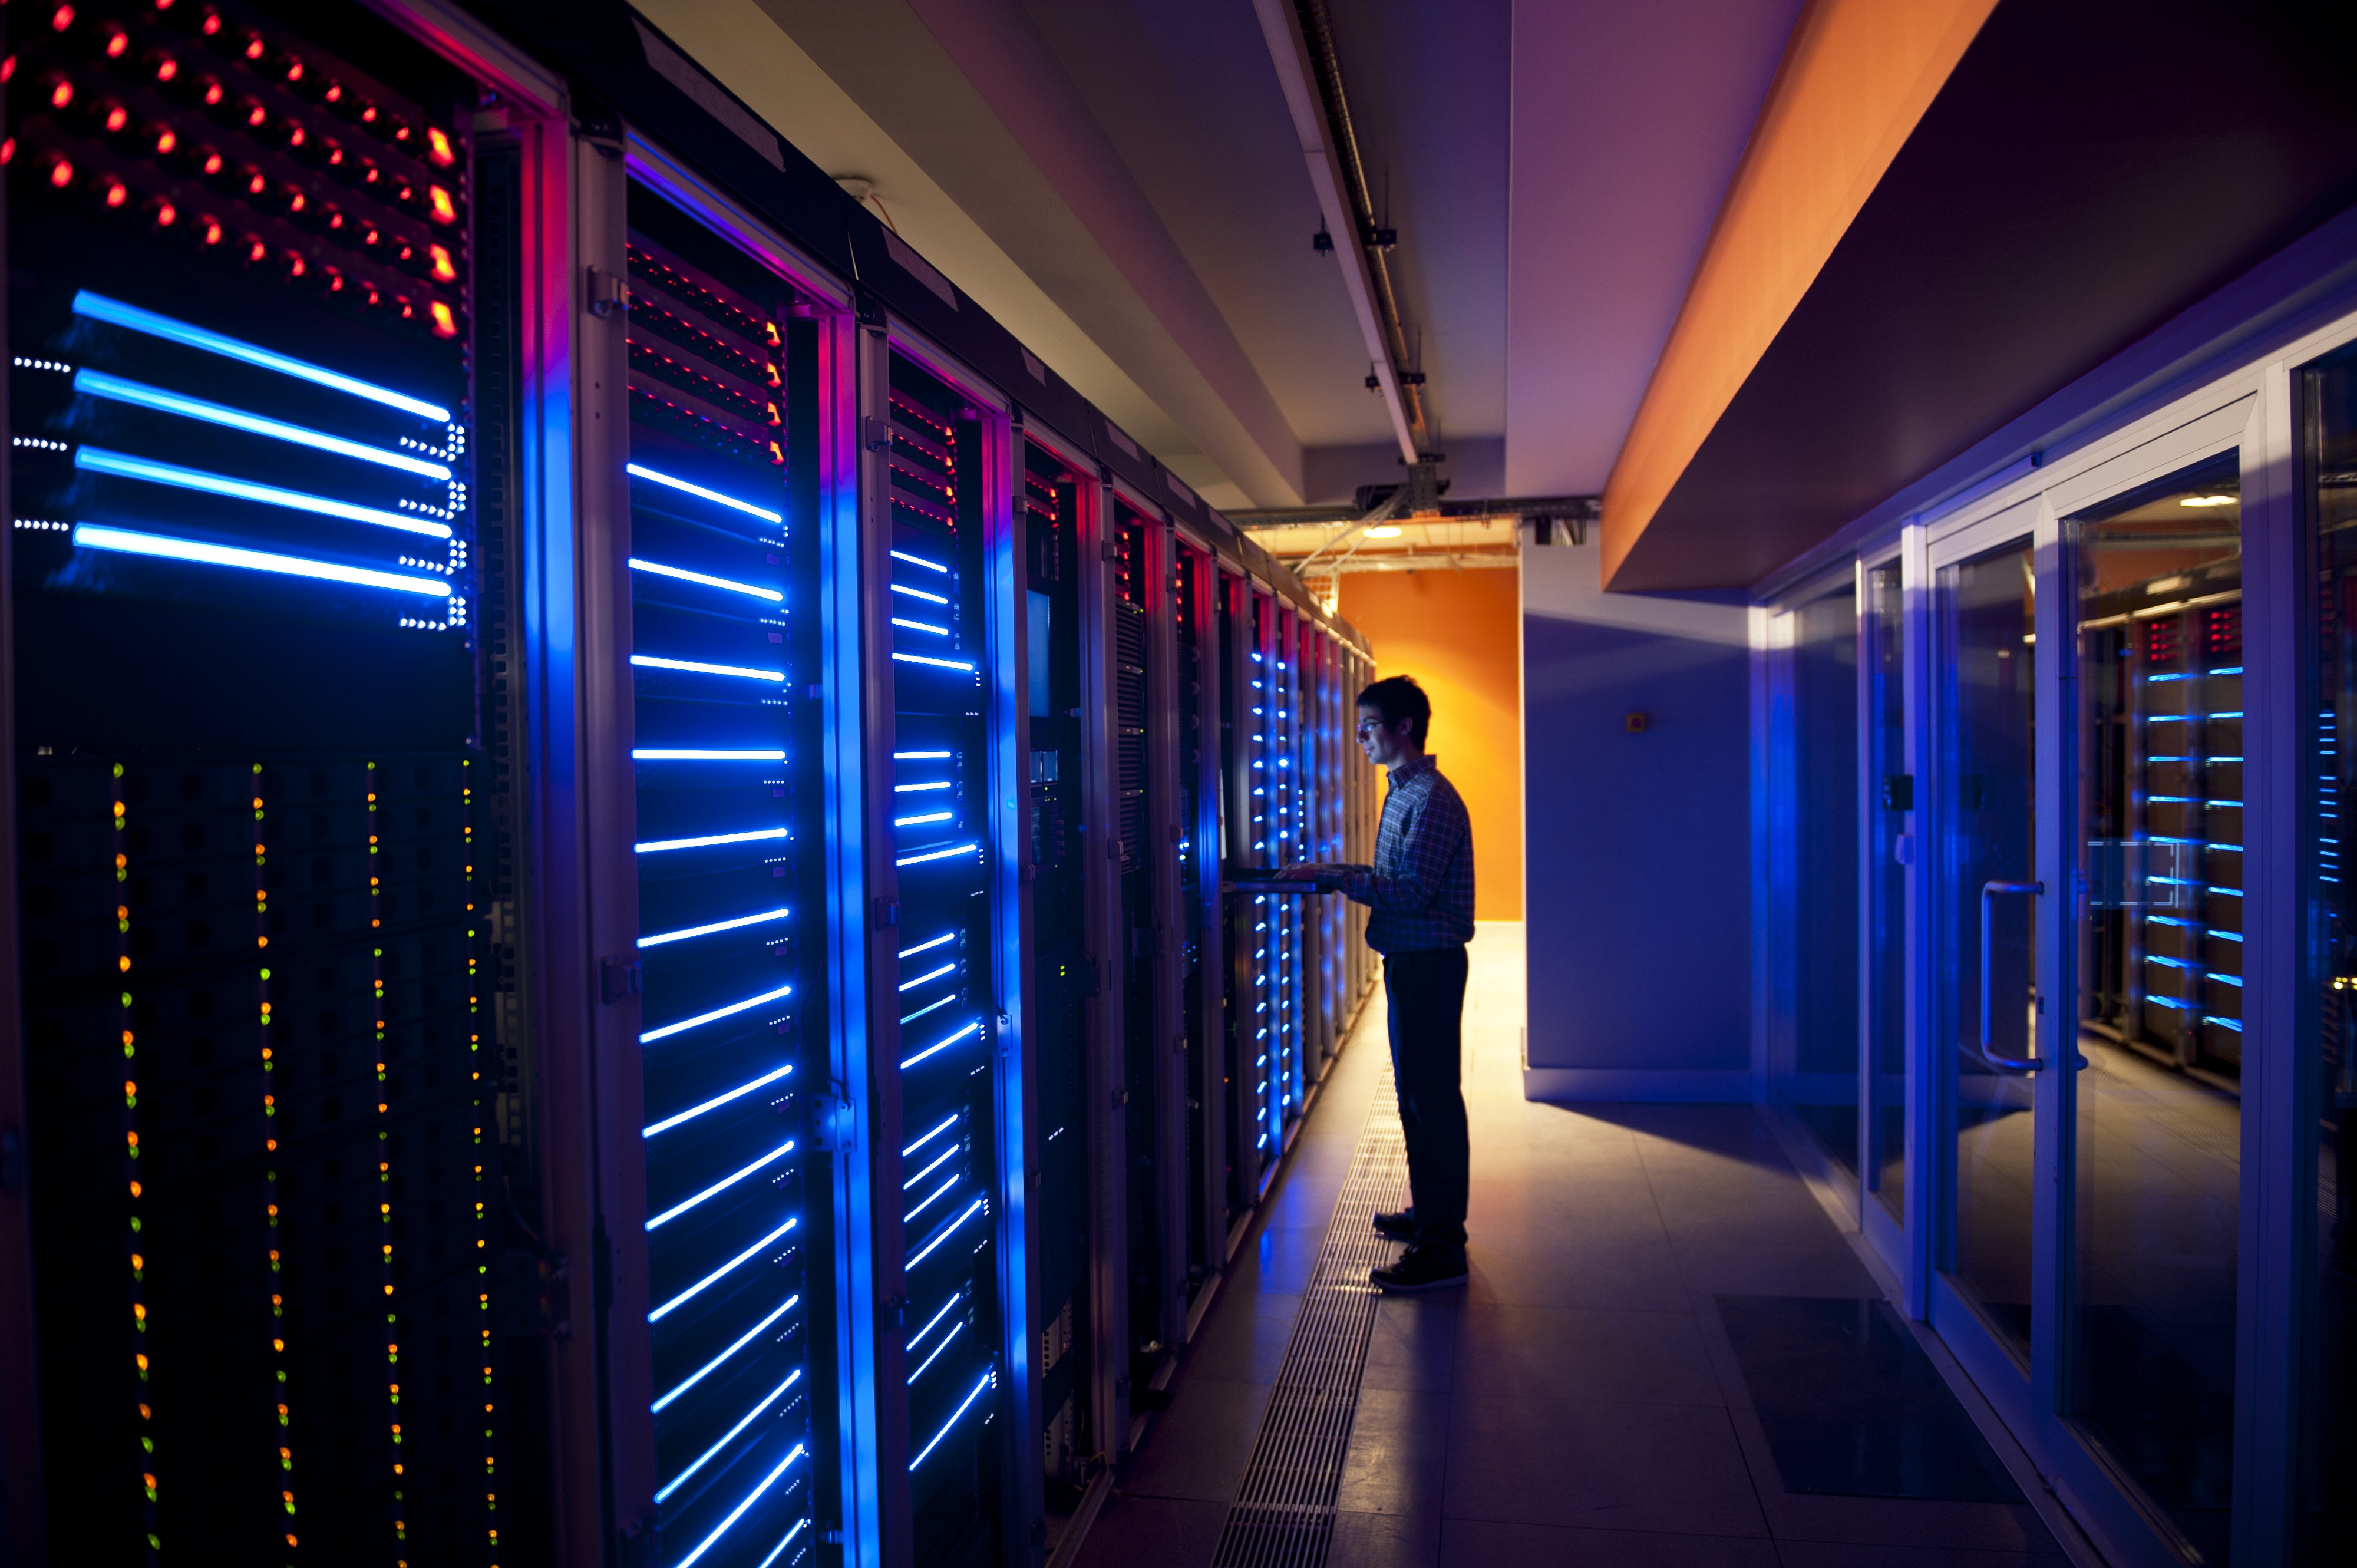 Ensuring End-user Privacy and Data Security for Machine